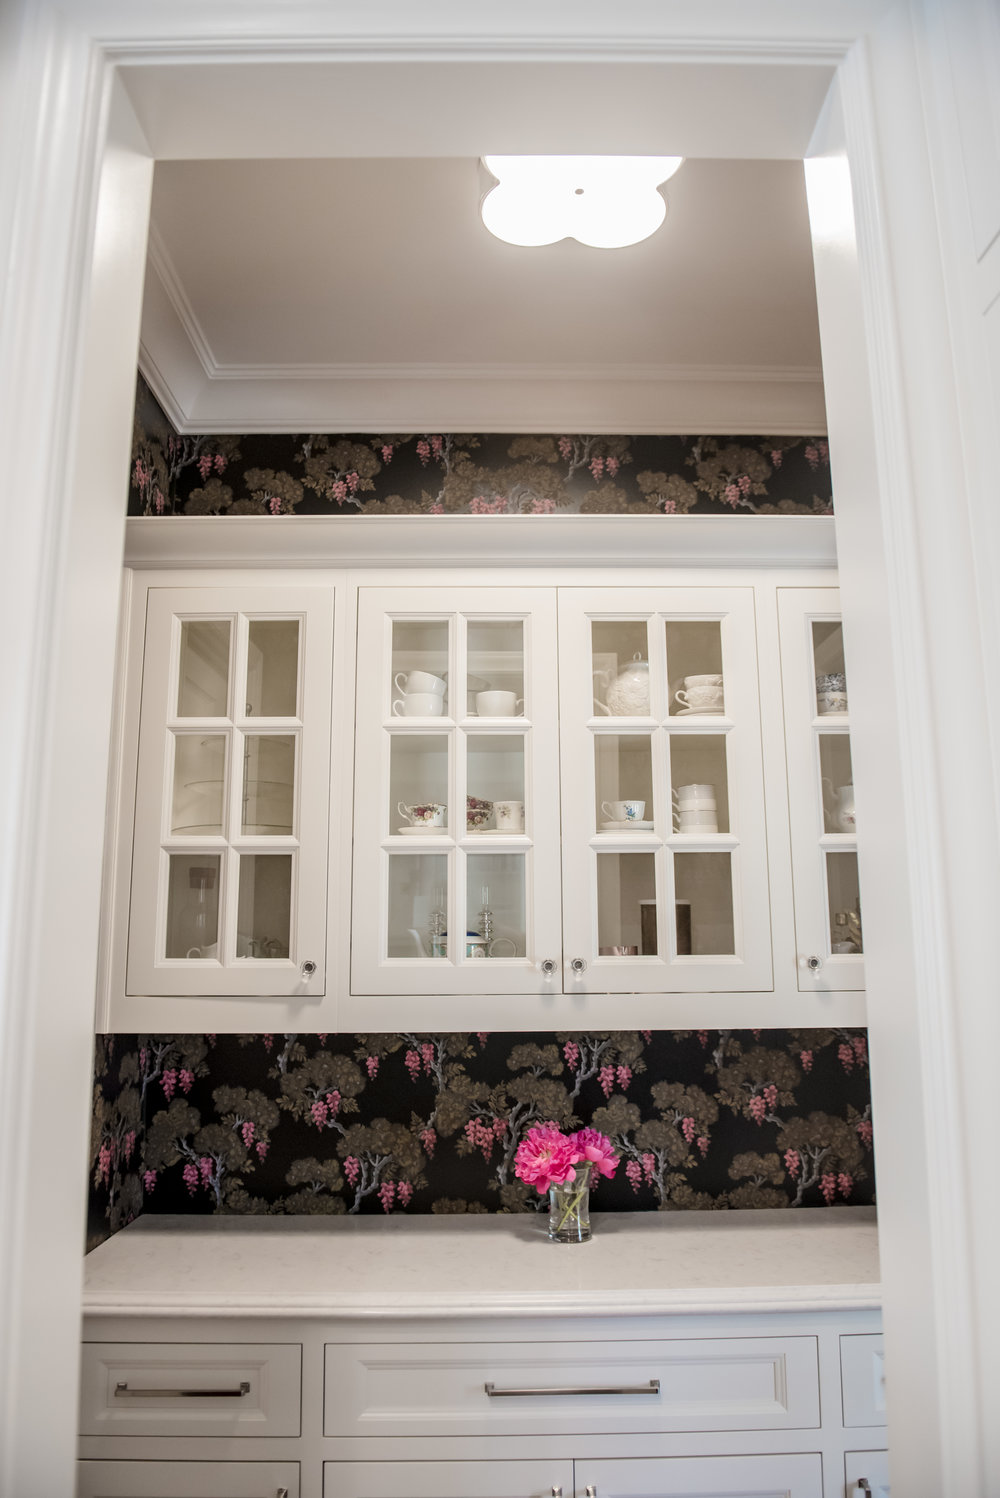 24+Butlers+Pantry+Wallpaper+Glasscabinets+Floral+Black+Bold.jpg